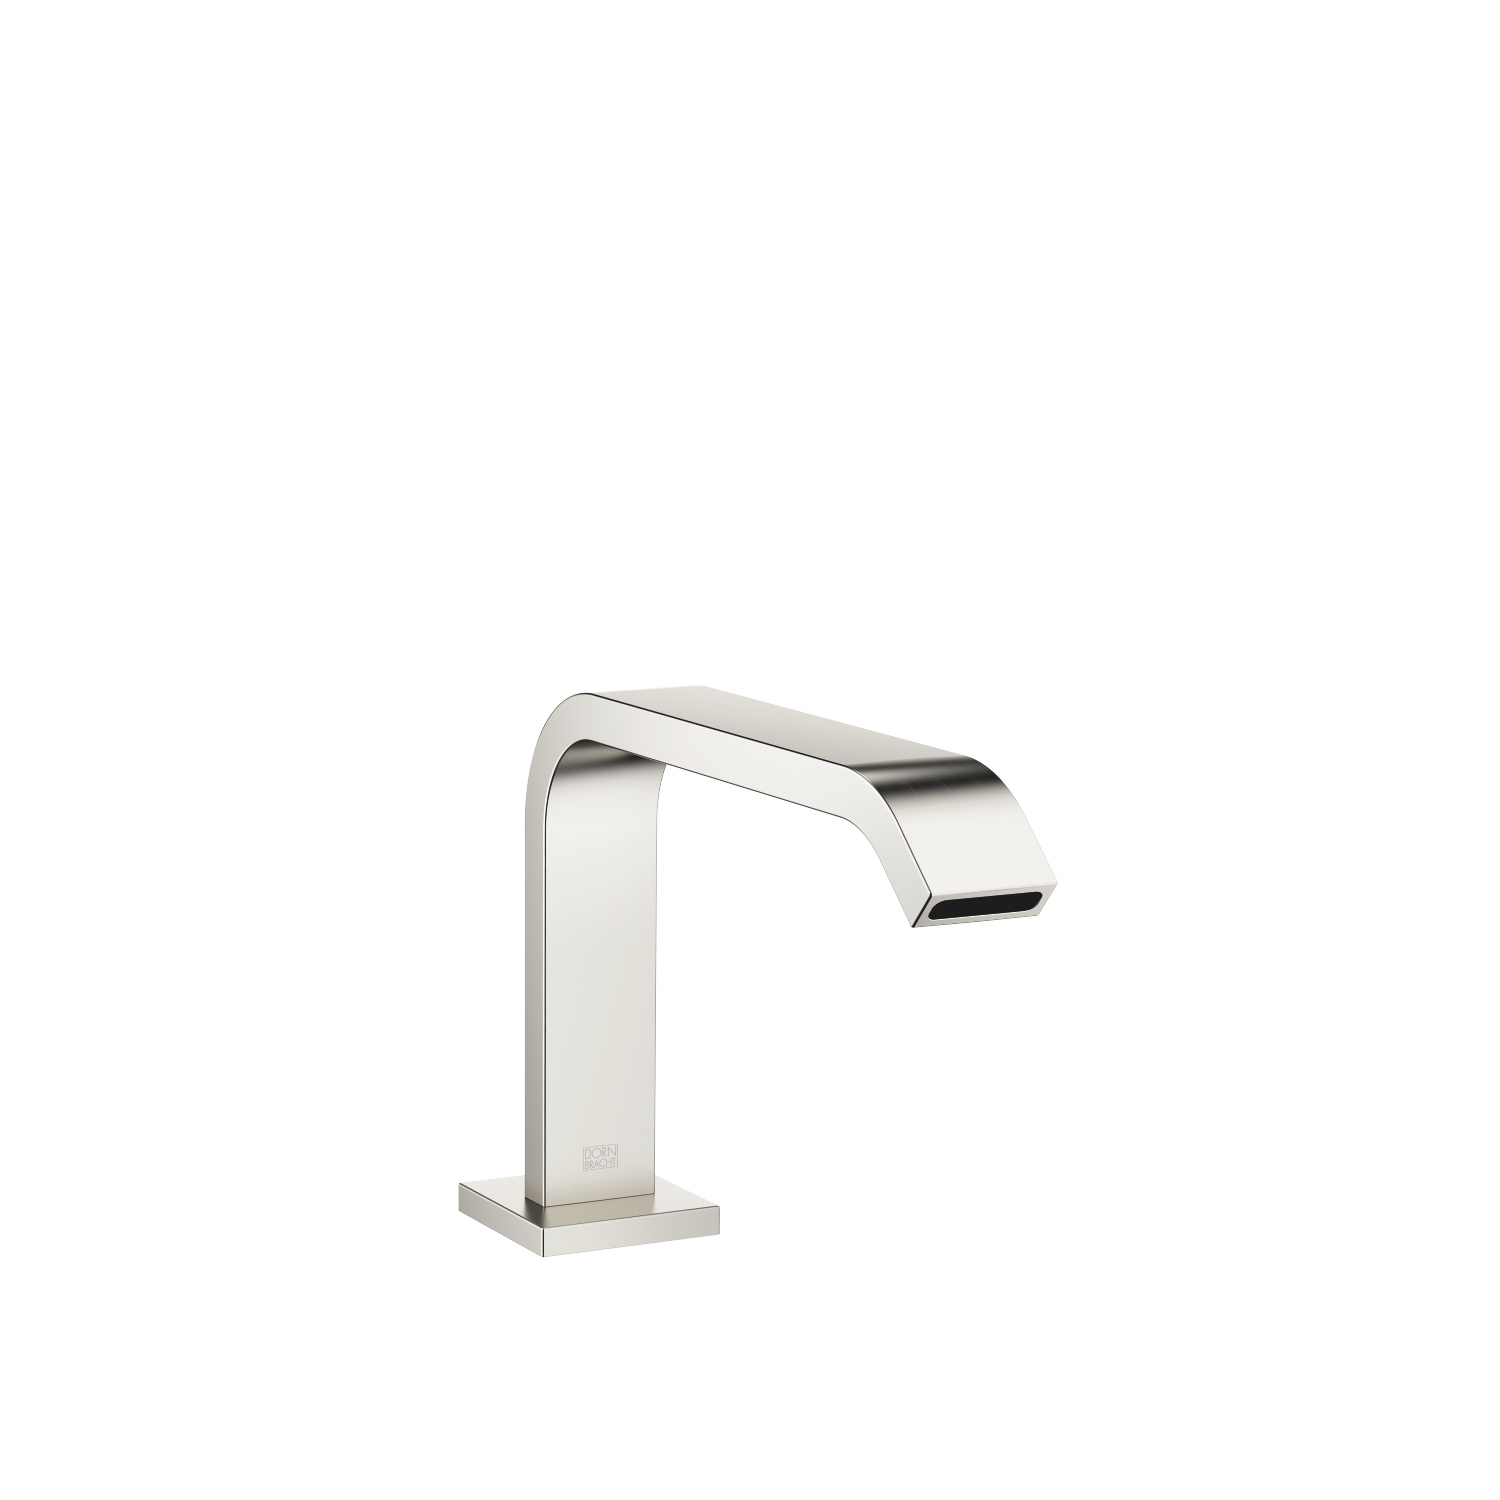 bath spout with diverter for deck mounting - platinum matt